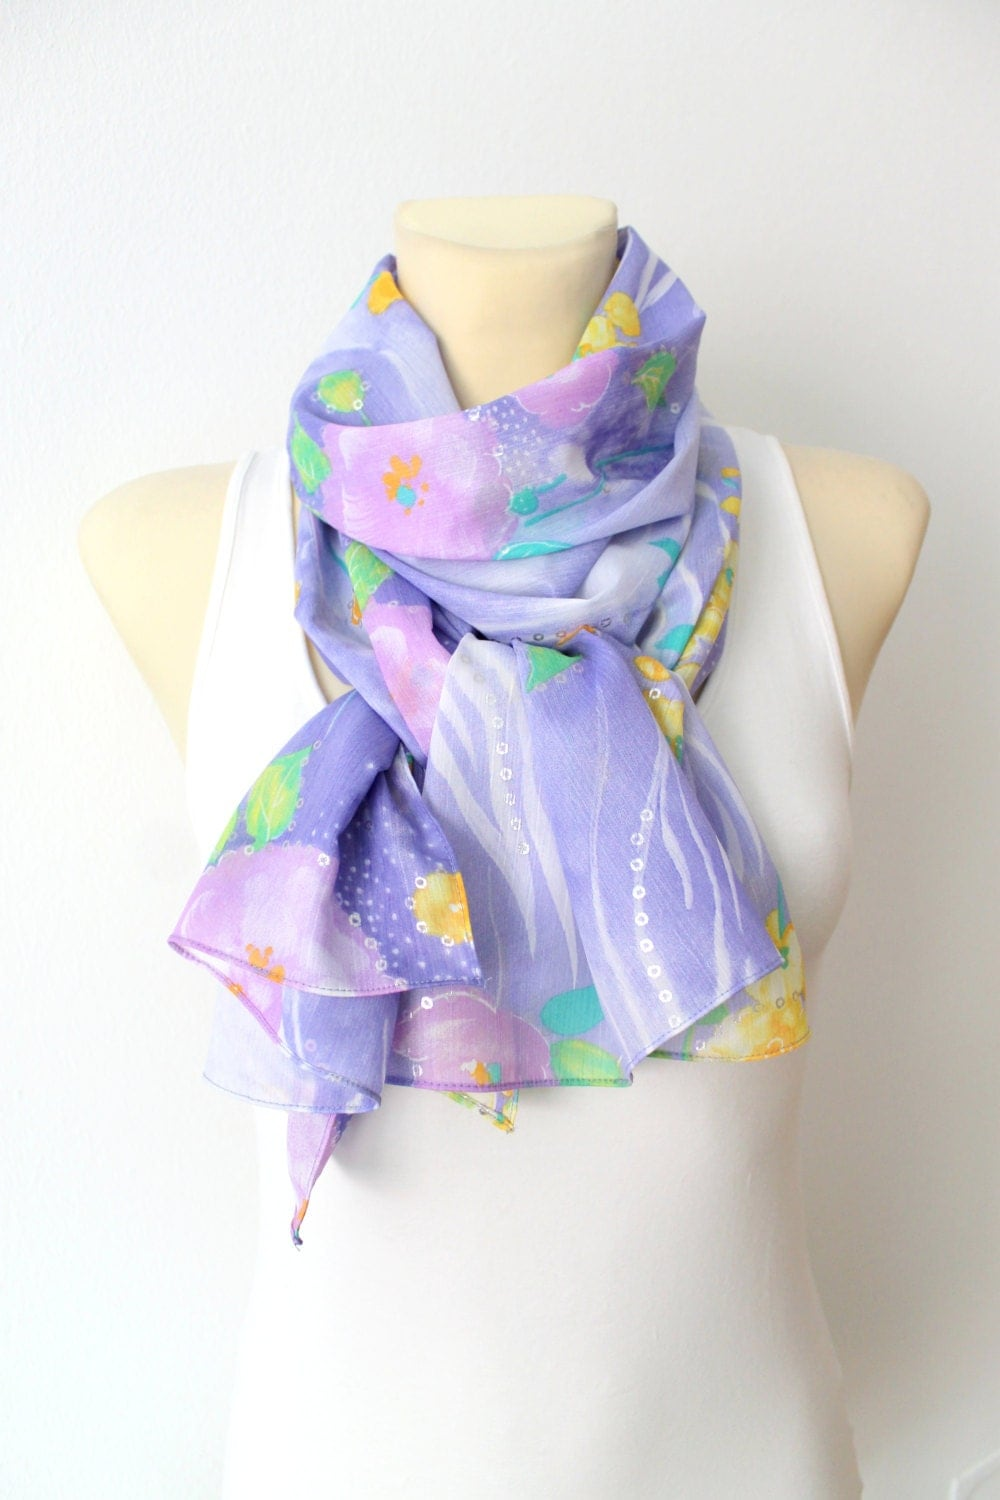 Request a custom order and have something made just for you Fashion Scarf Fabric